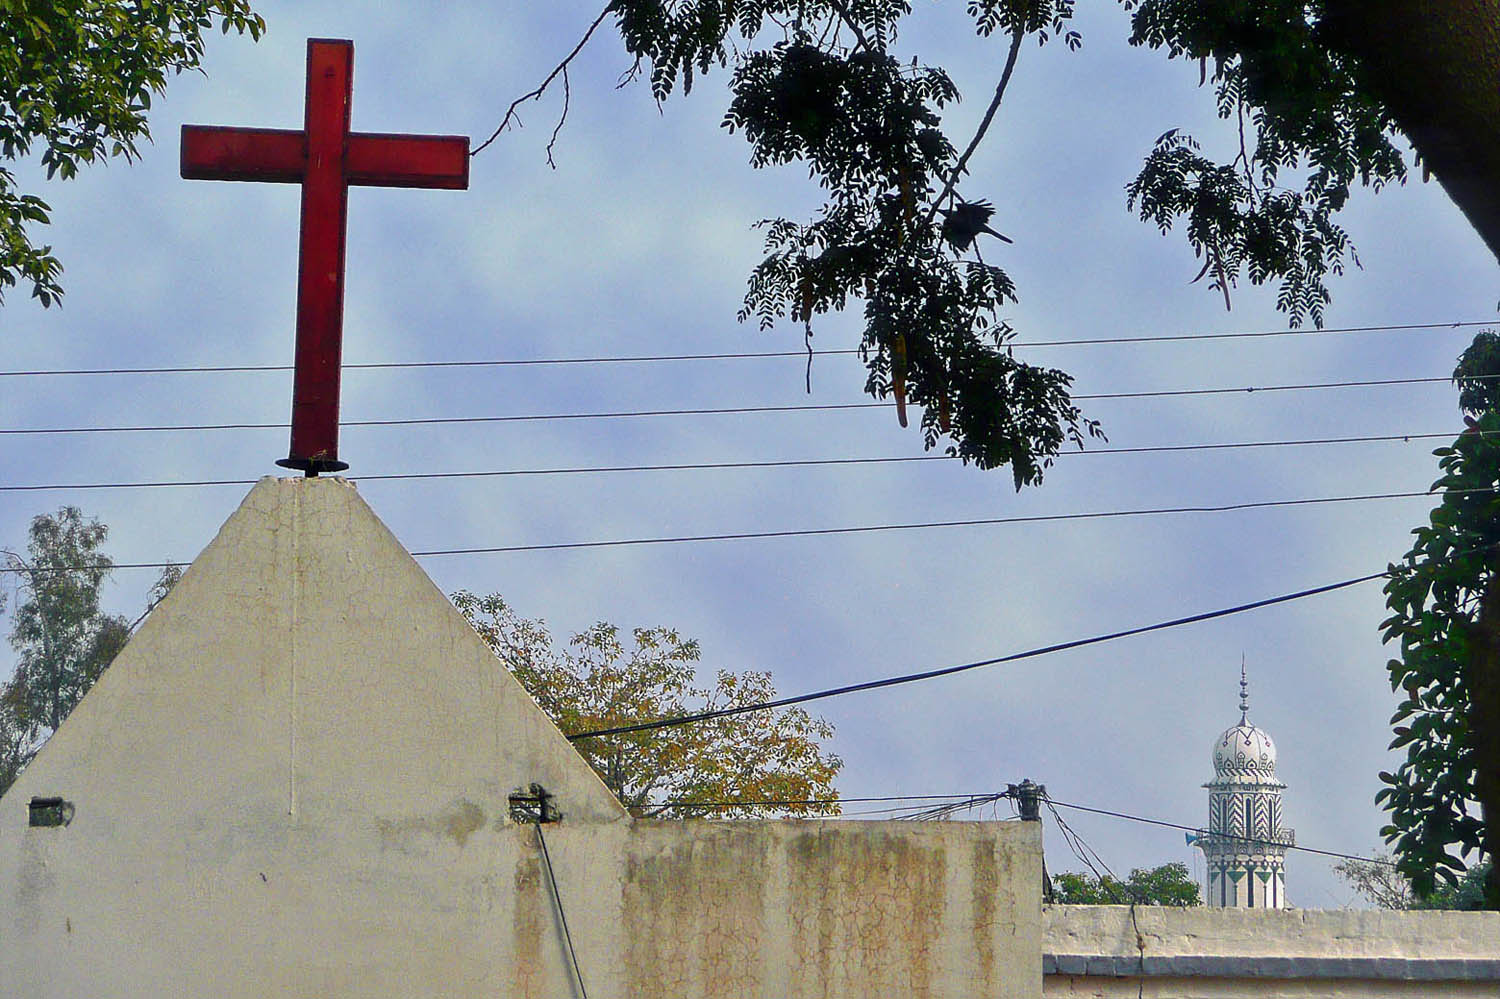 Mandatory security updates threaten church closures in Pakistan